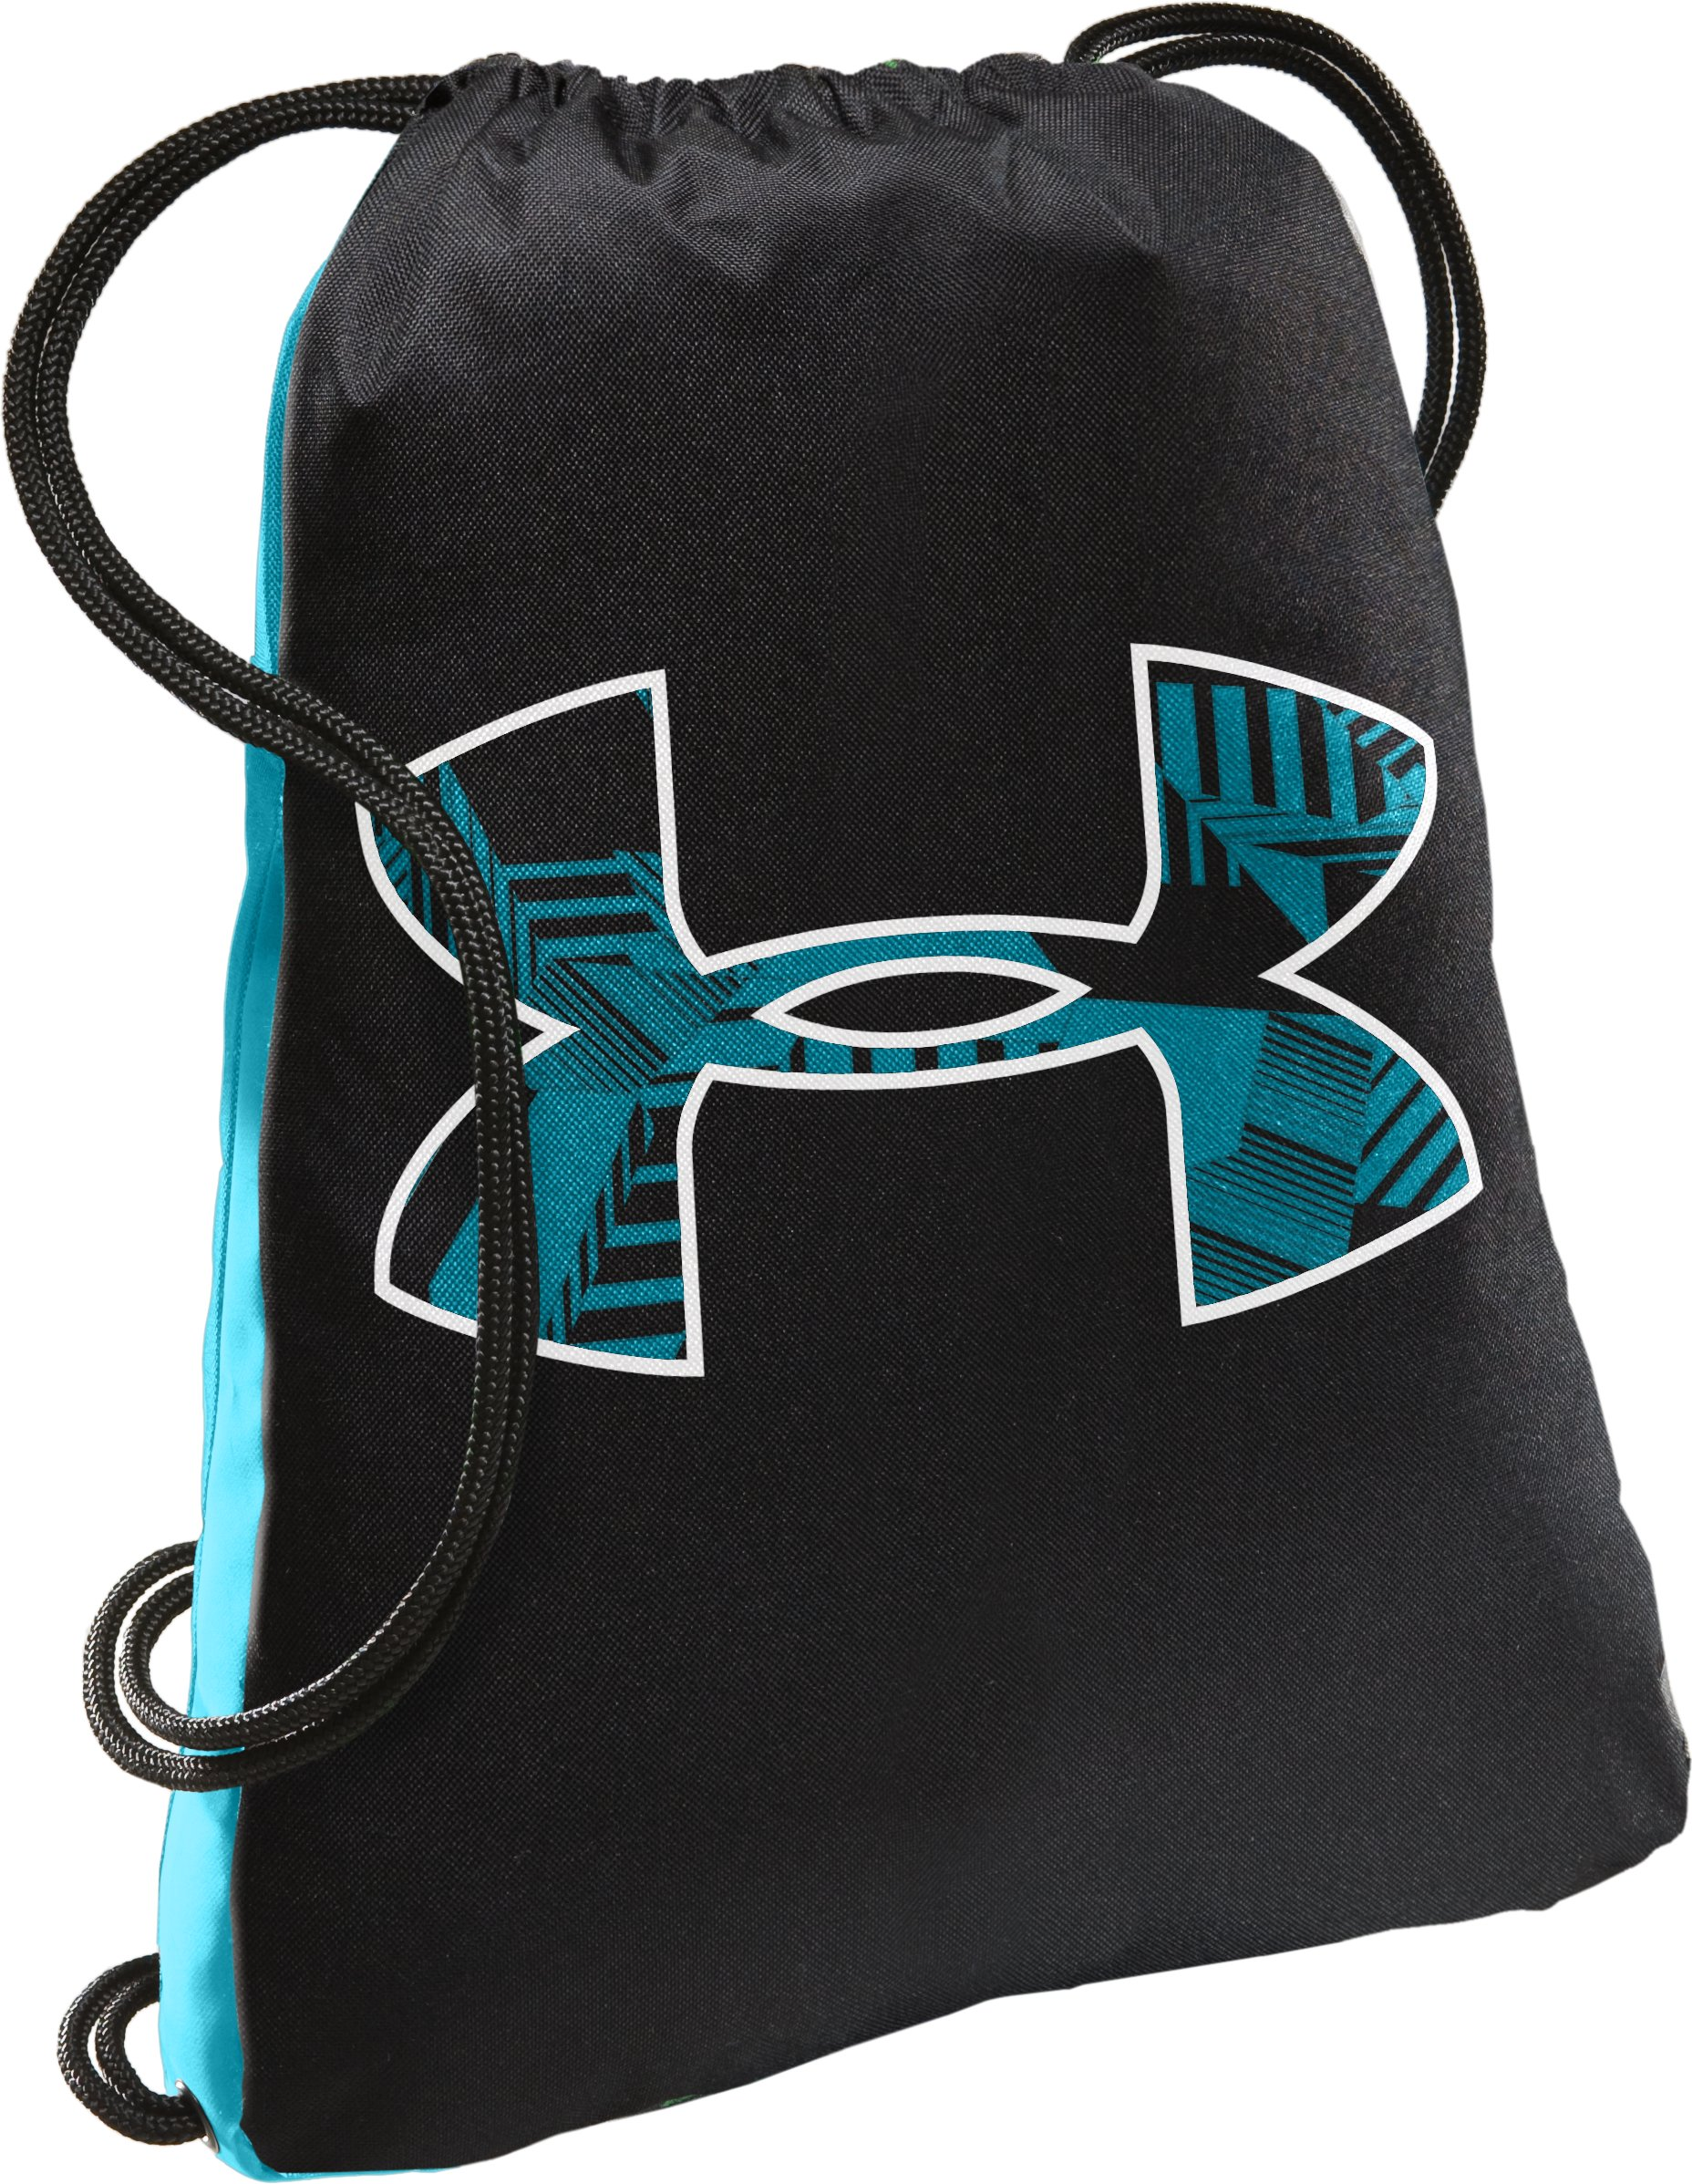 UA Tyro Courage Sackpack, Black